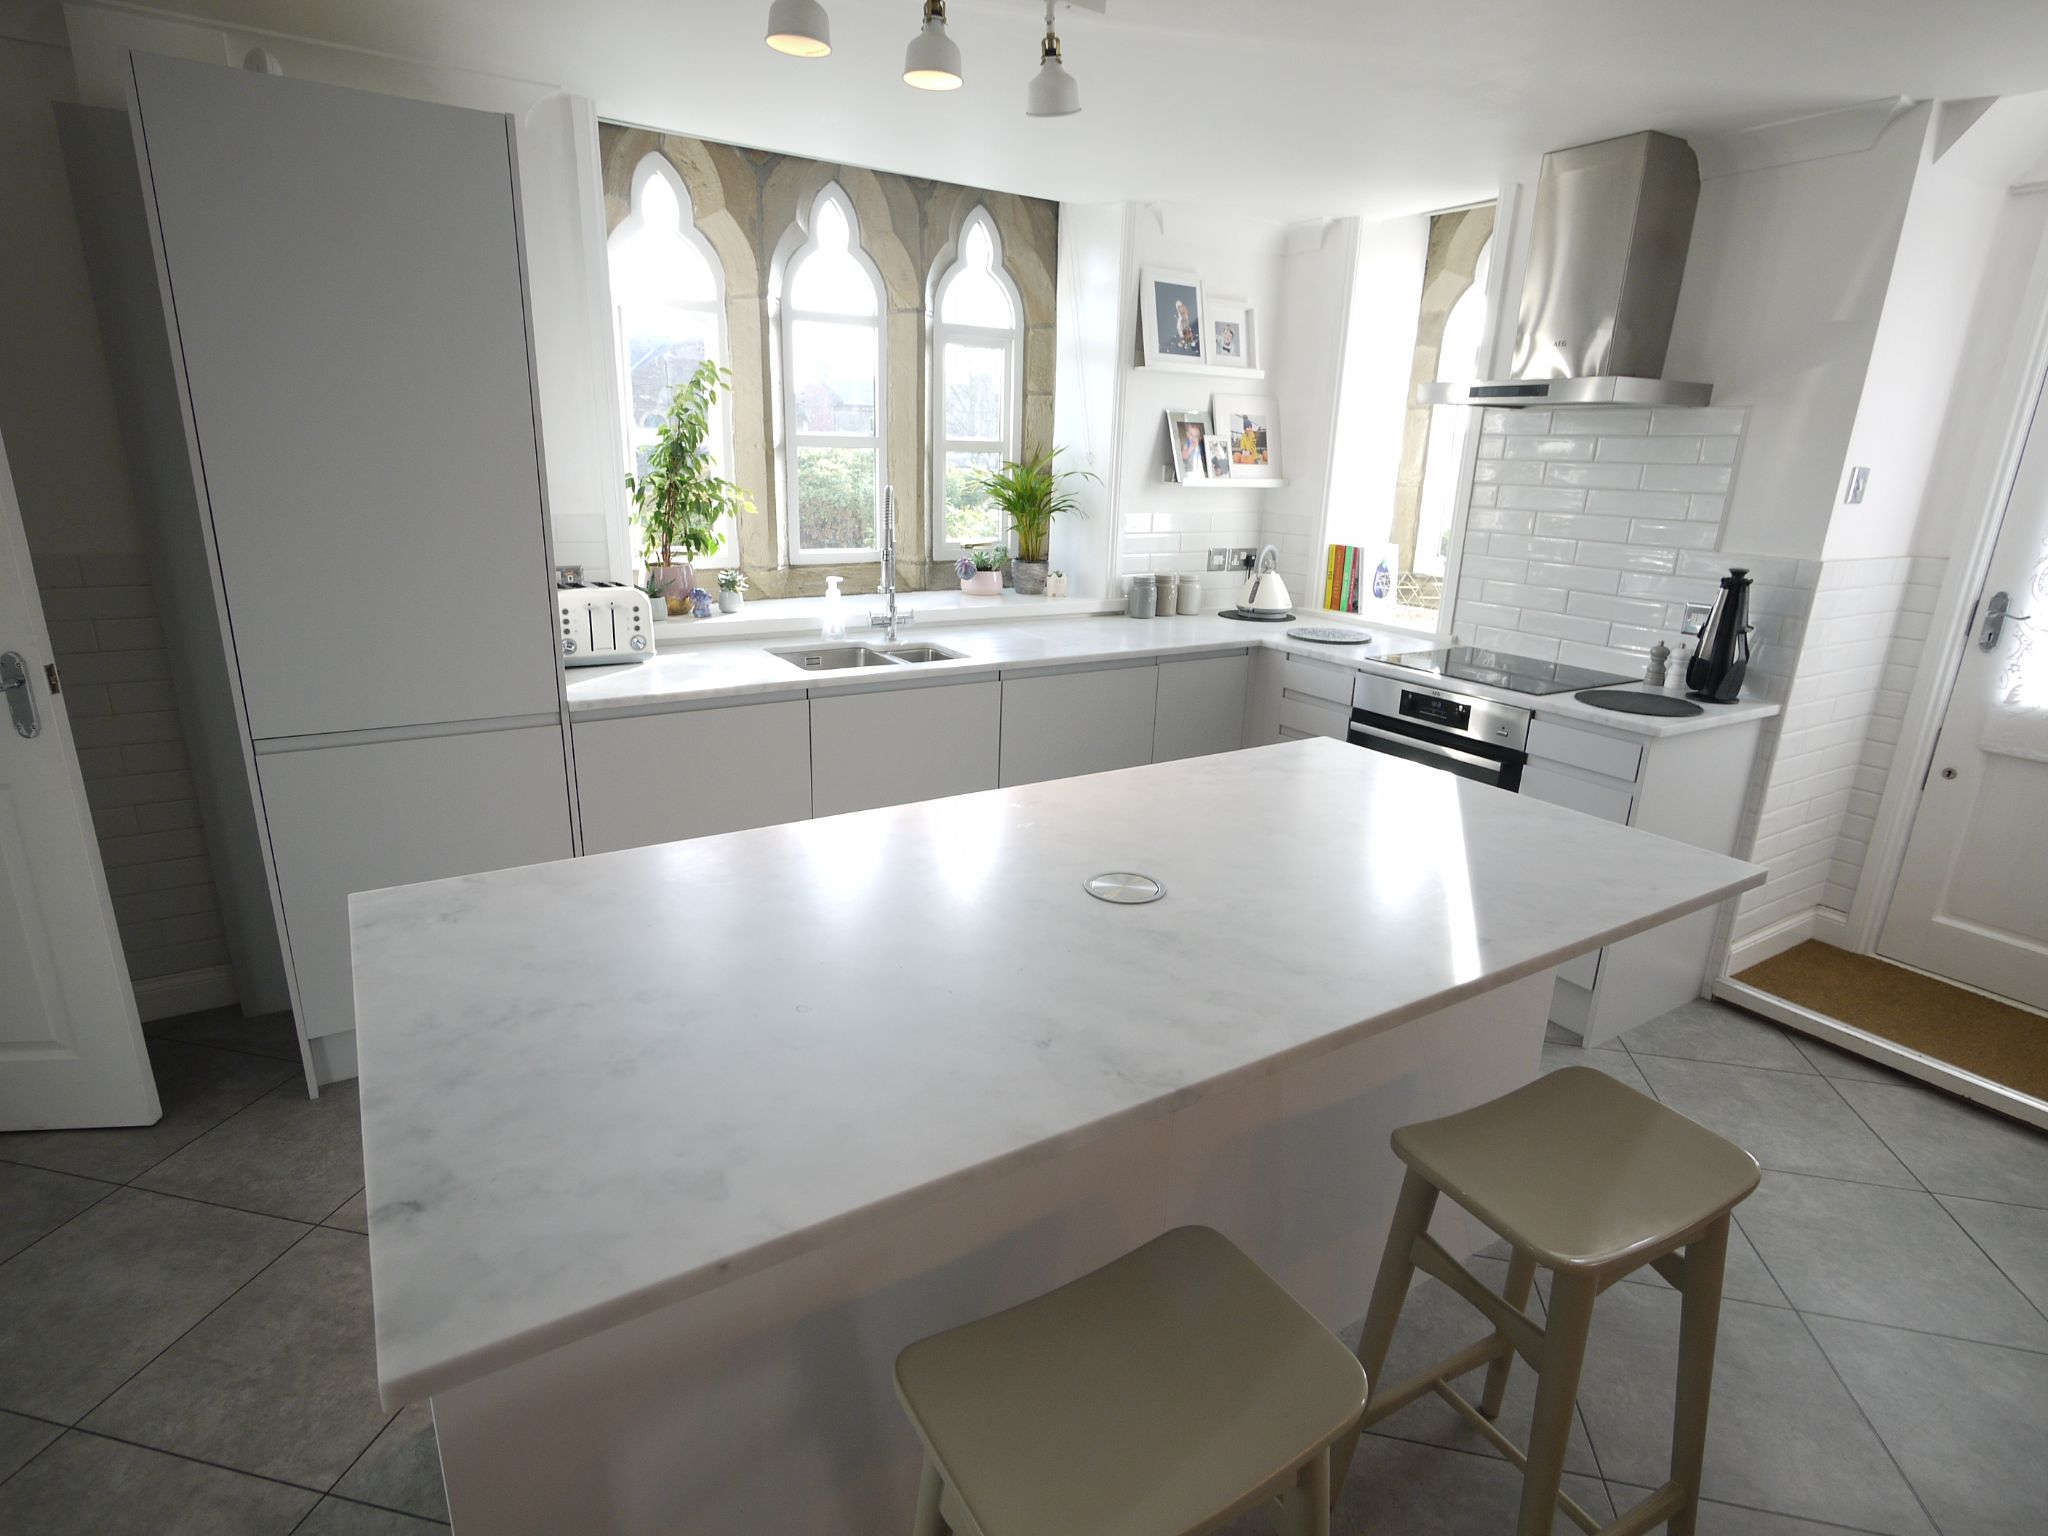 2 bedroom end terraced house SSTC in Cleckheaton - Kitchen 3.